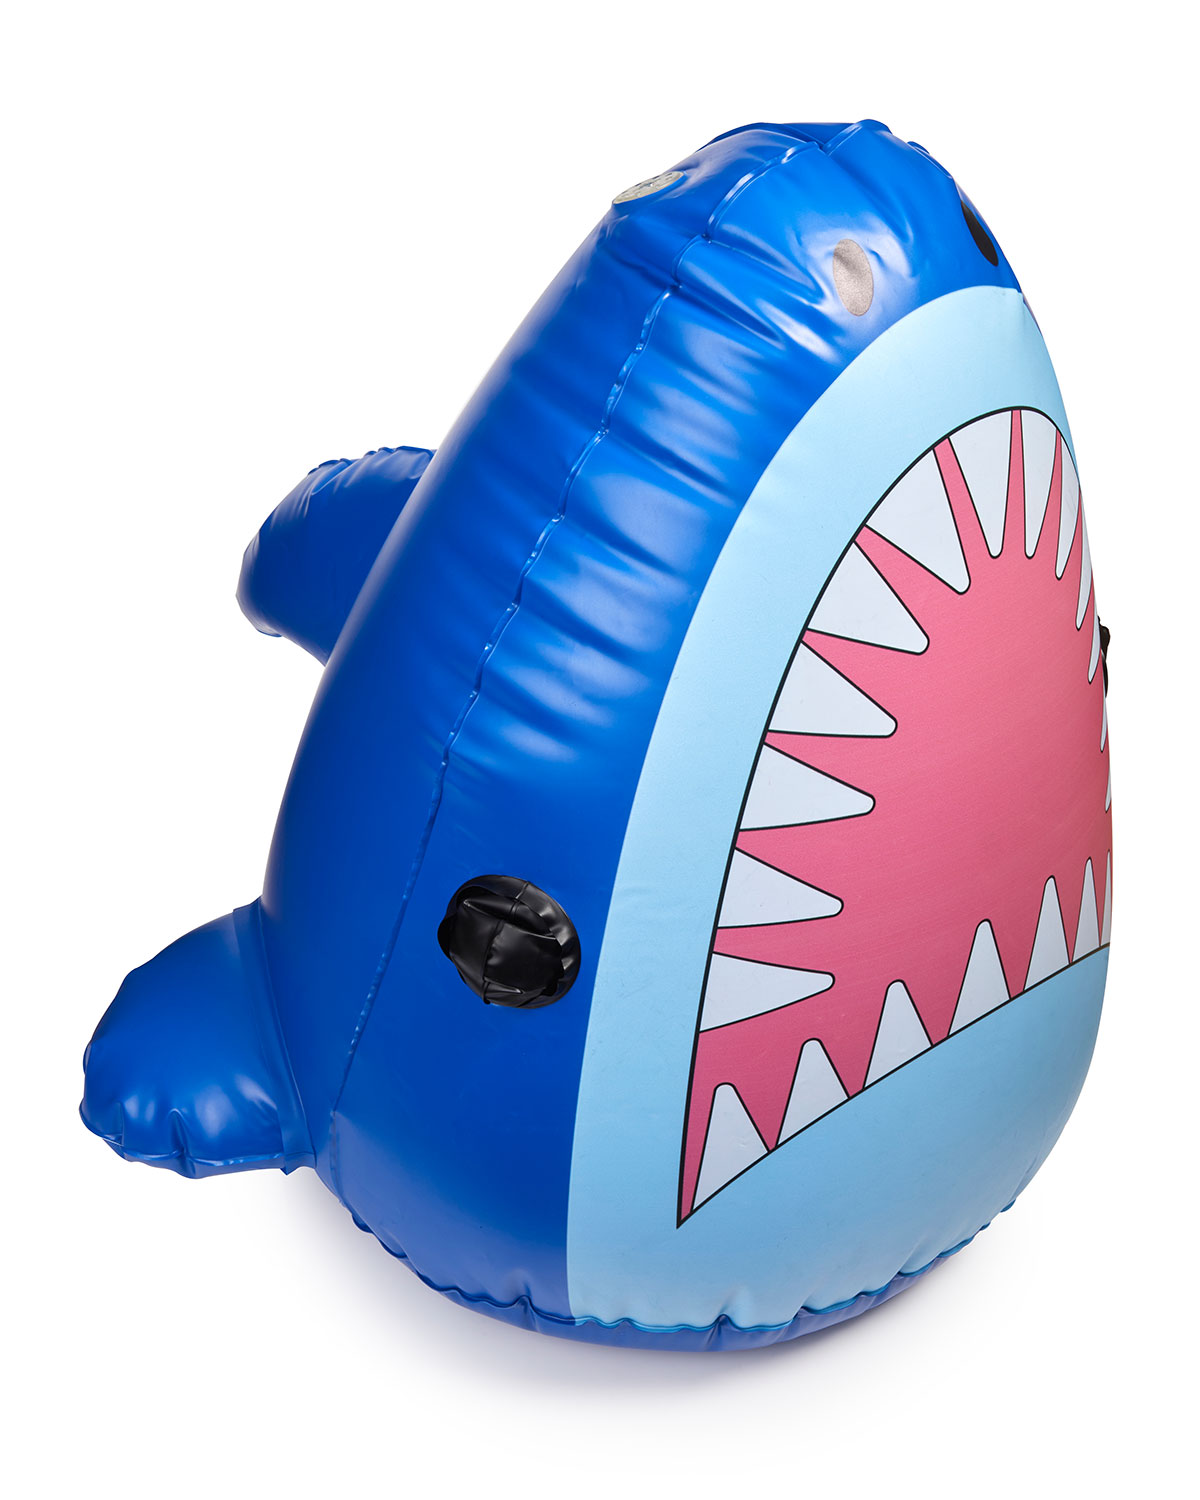 Bling2o Sharkie Inflatable Sprinkler